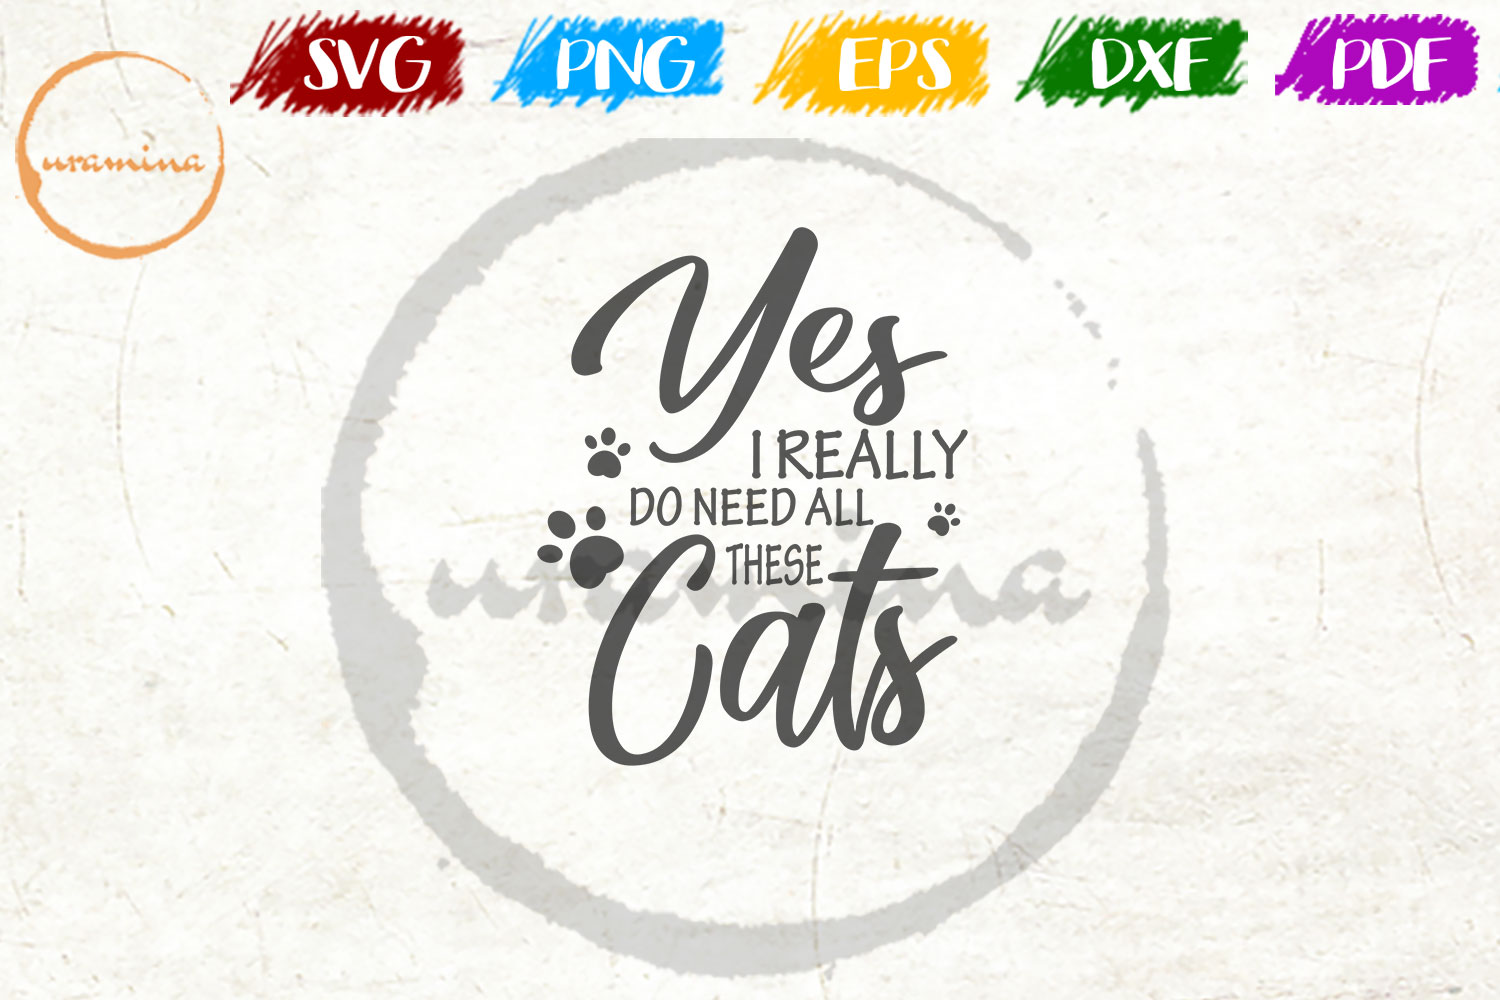 Download Free Yes I Really Do Need All These Cats Graphic By Uramina for Cricut Explore, Silhouette and other cutting machines.